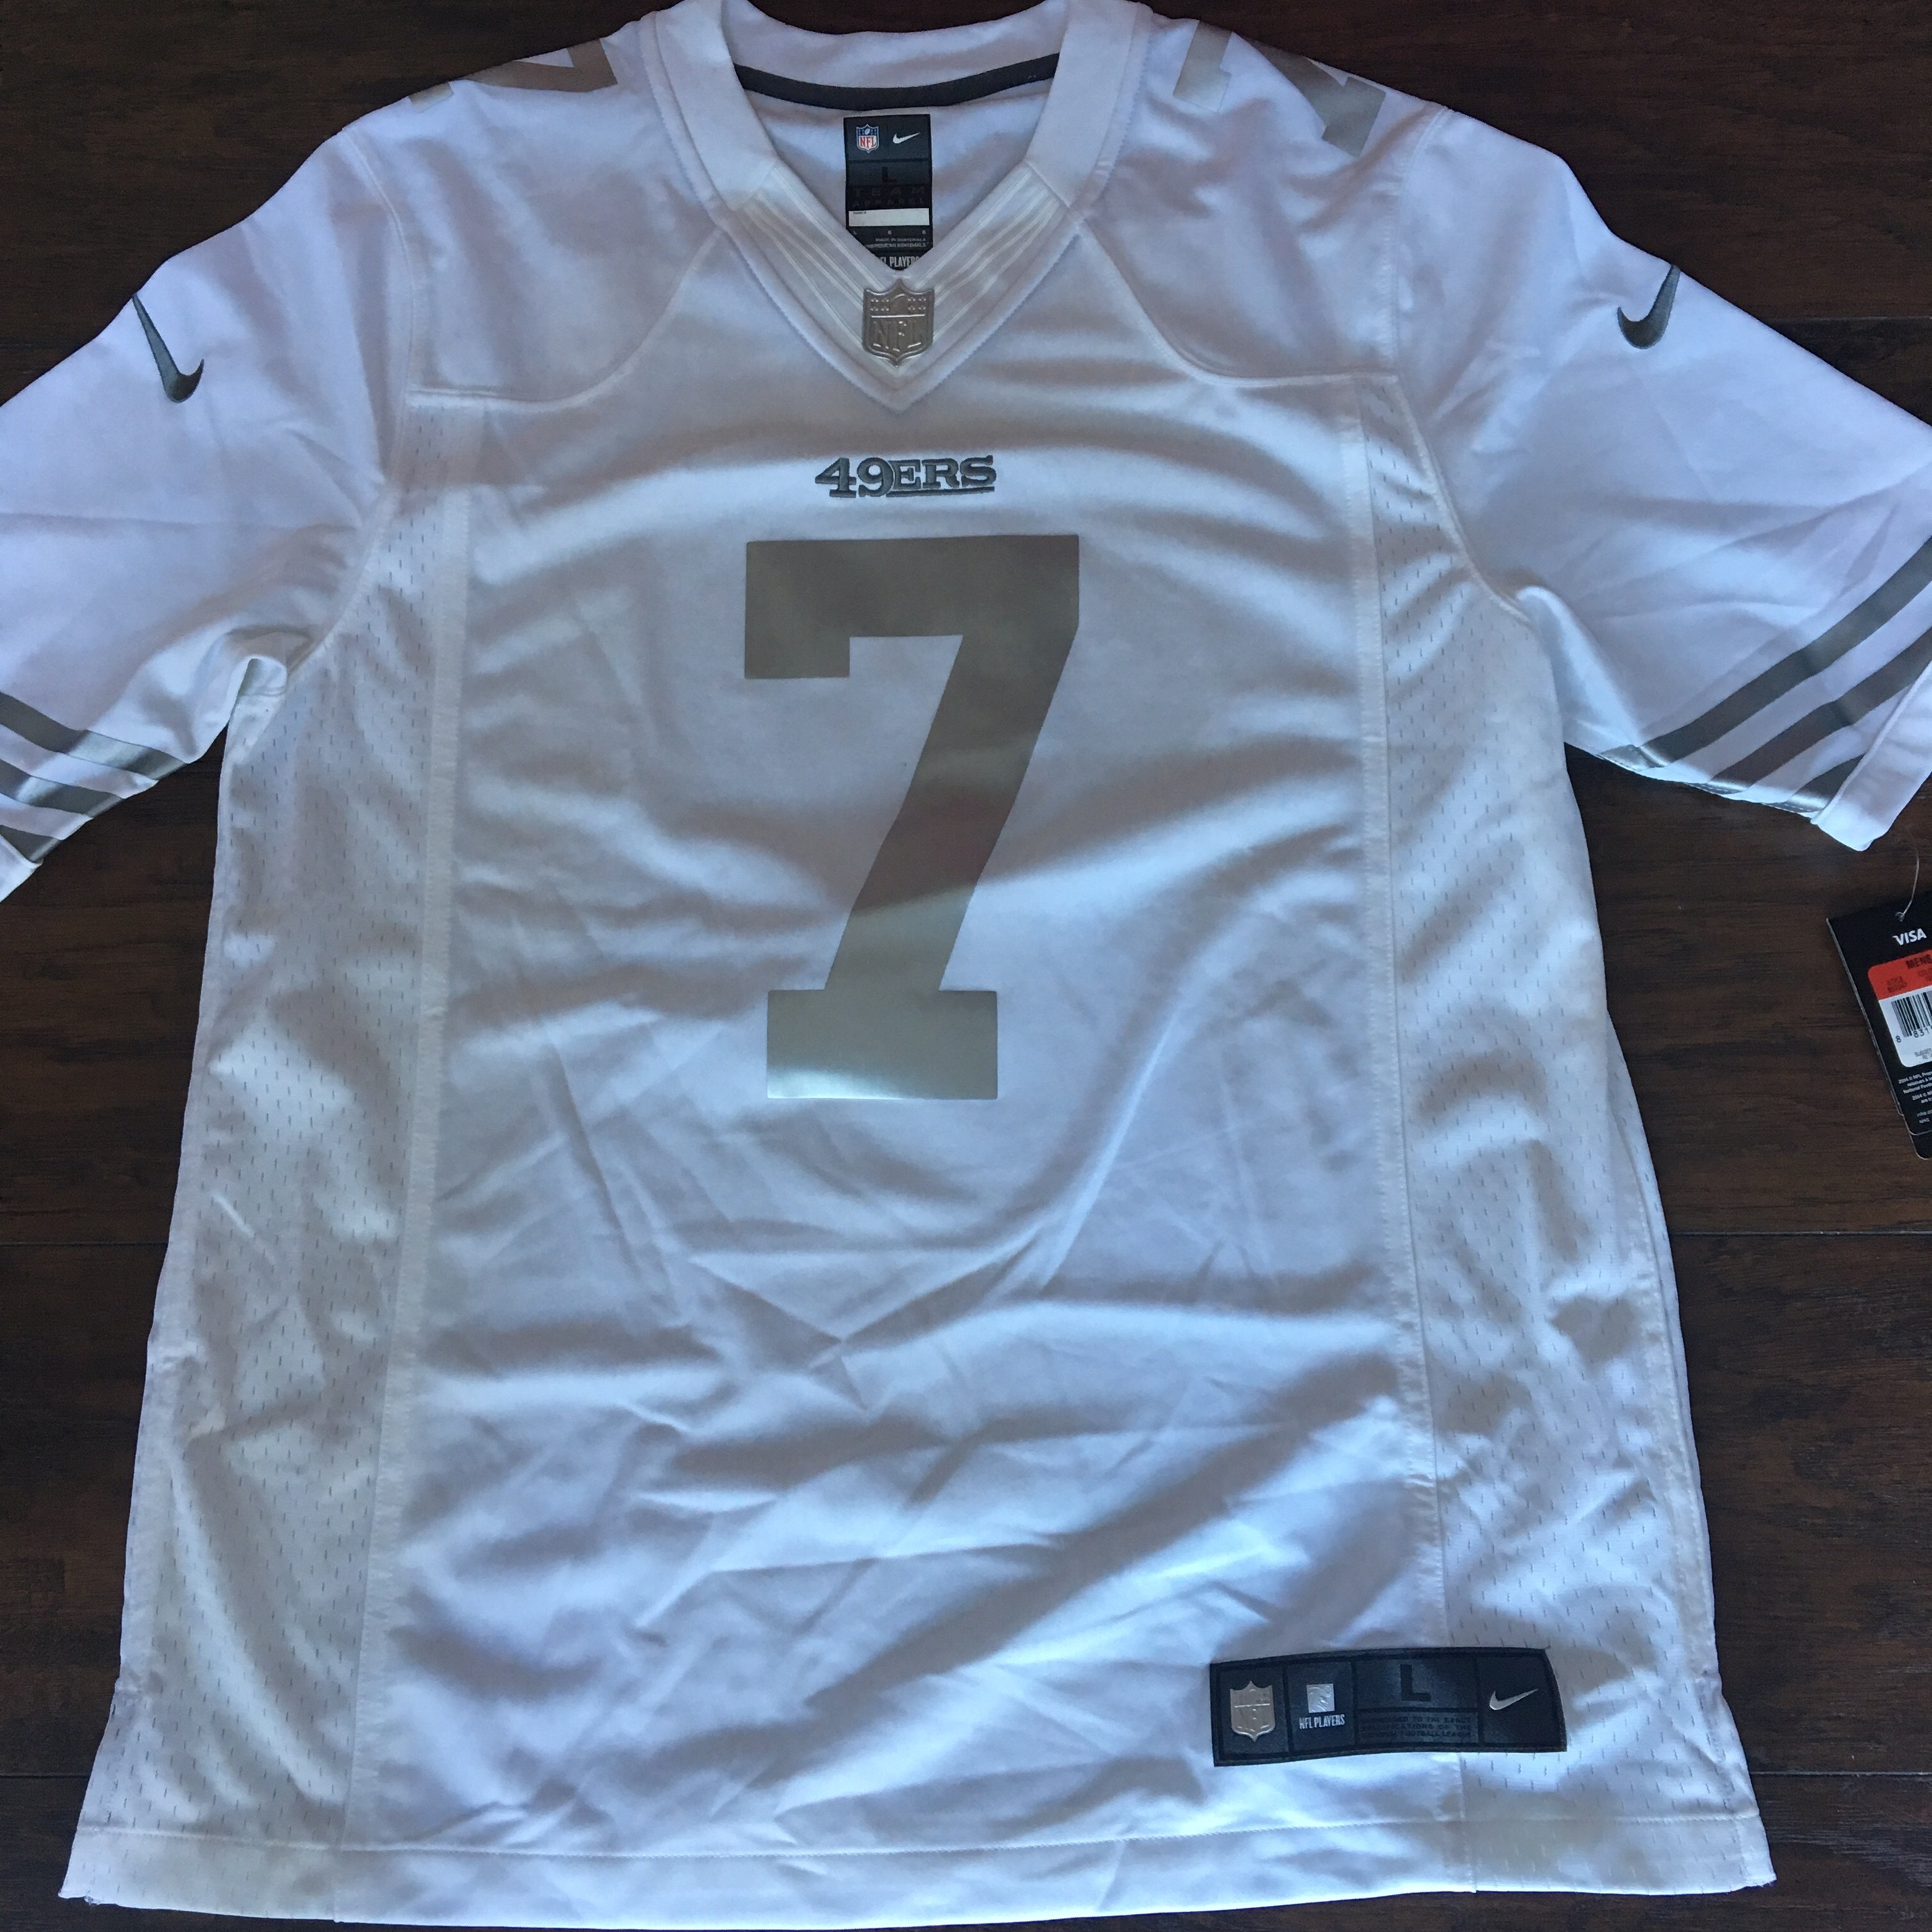 hot sale online 2ddb2 c0a11 Nike 49ers kaepernick jersey Special edition... - Depop